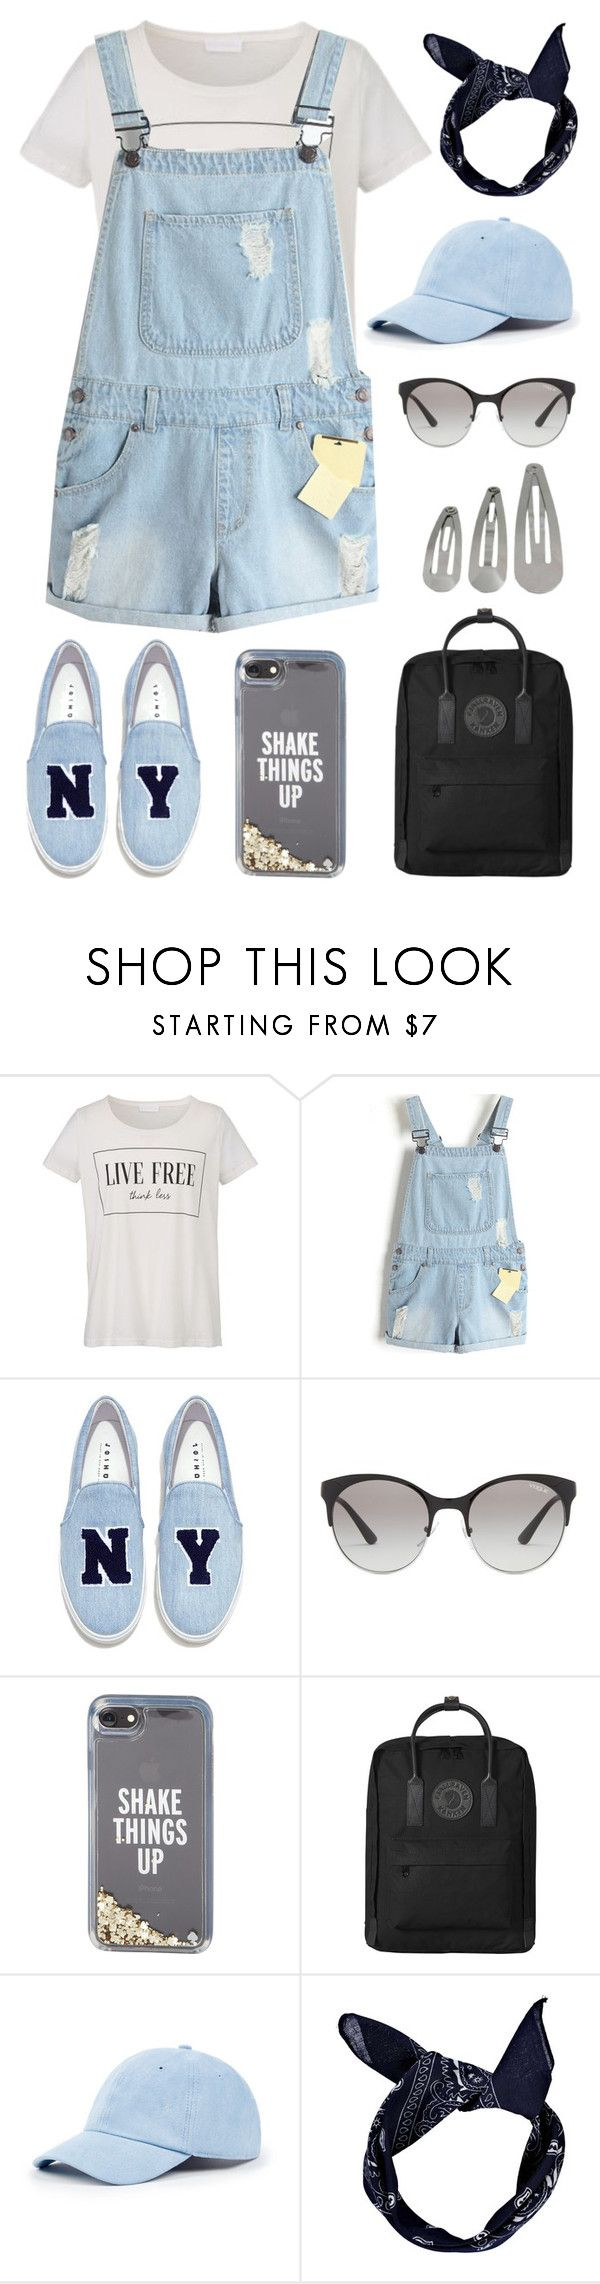 """Denim Shake"" by bambiwinchester ❤ liked on Polyvore featuring Joshua's, Vogue Eyewear, Kate Spade, Fjällräven, Sole Society and Boohoo"